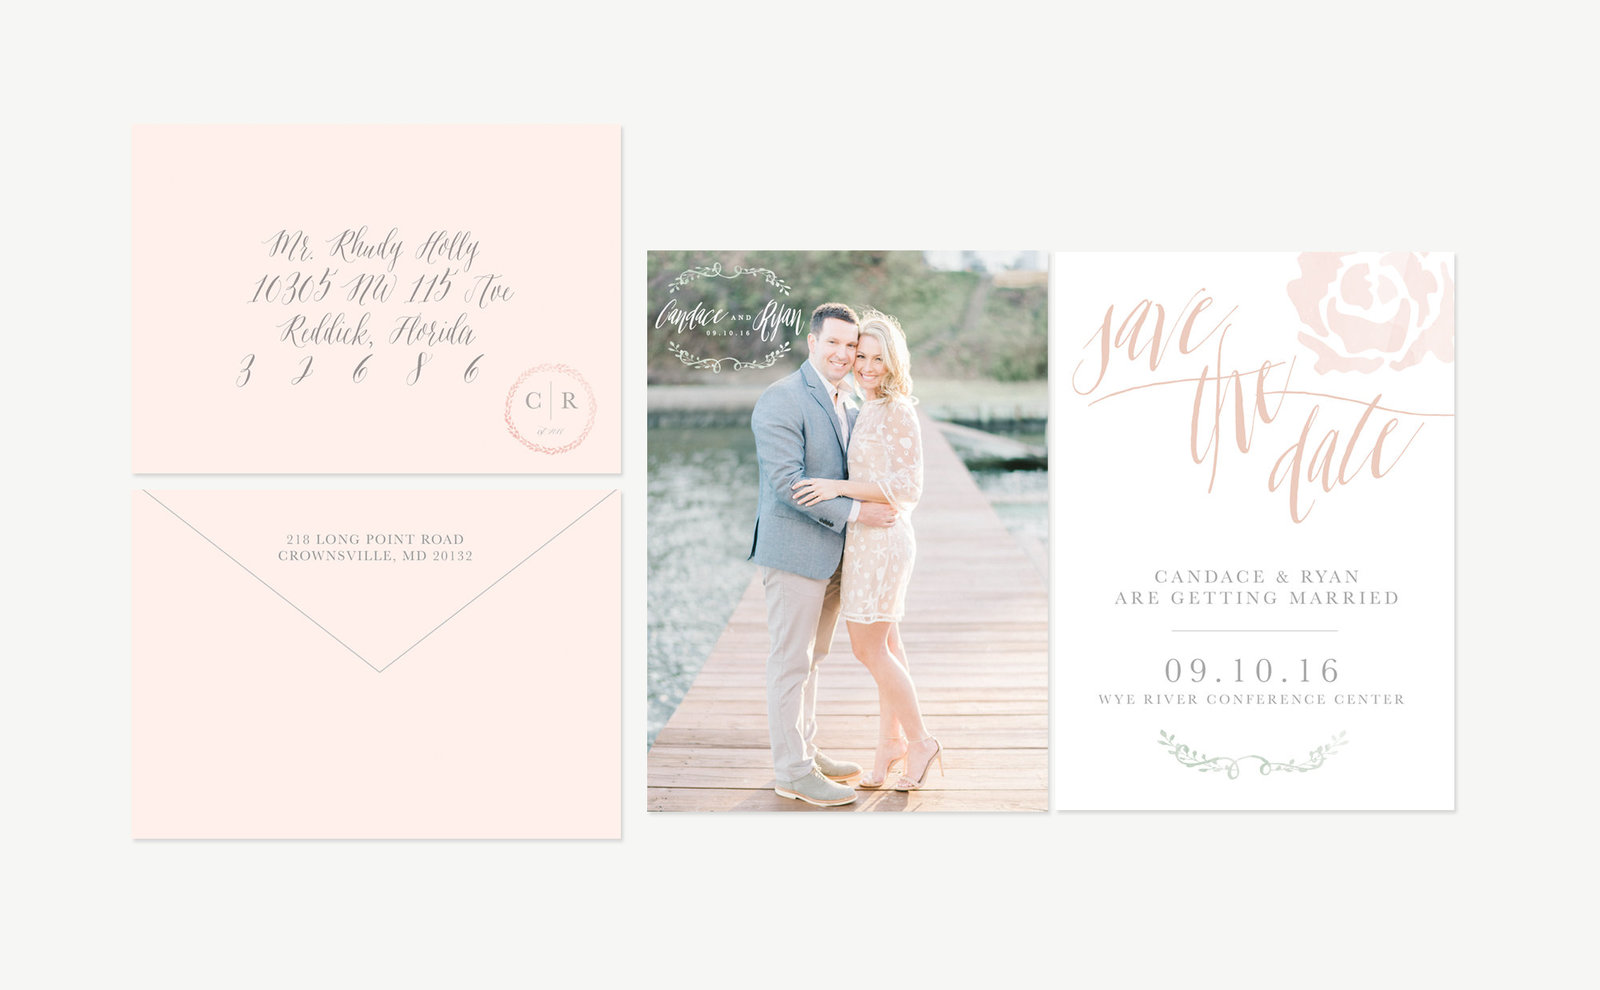 wedding-branding-save-the-date-candace-ryan